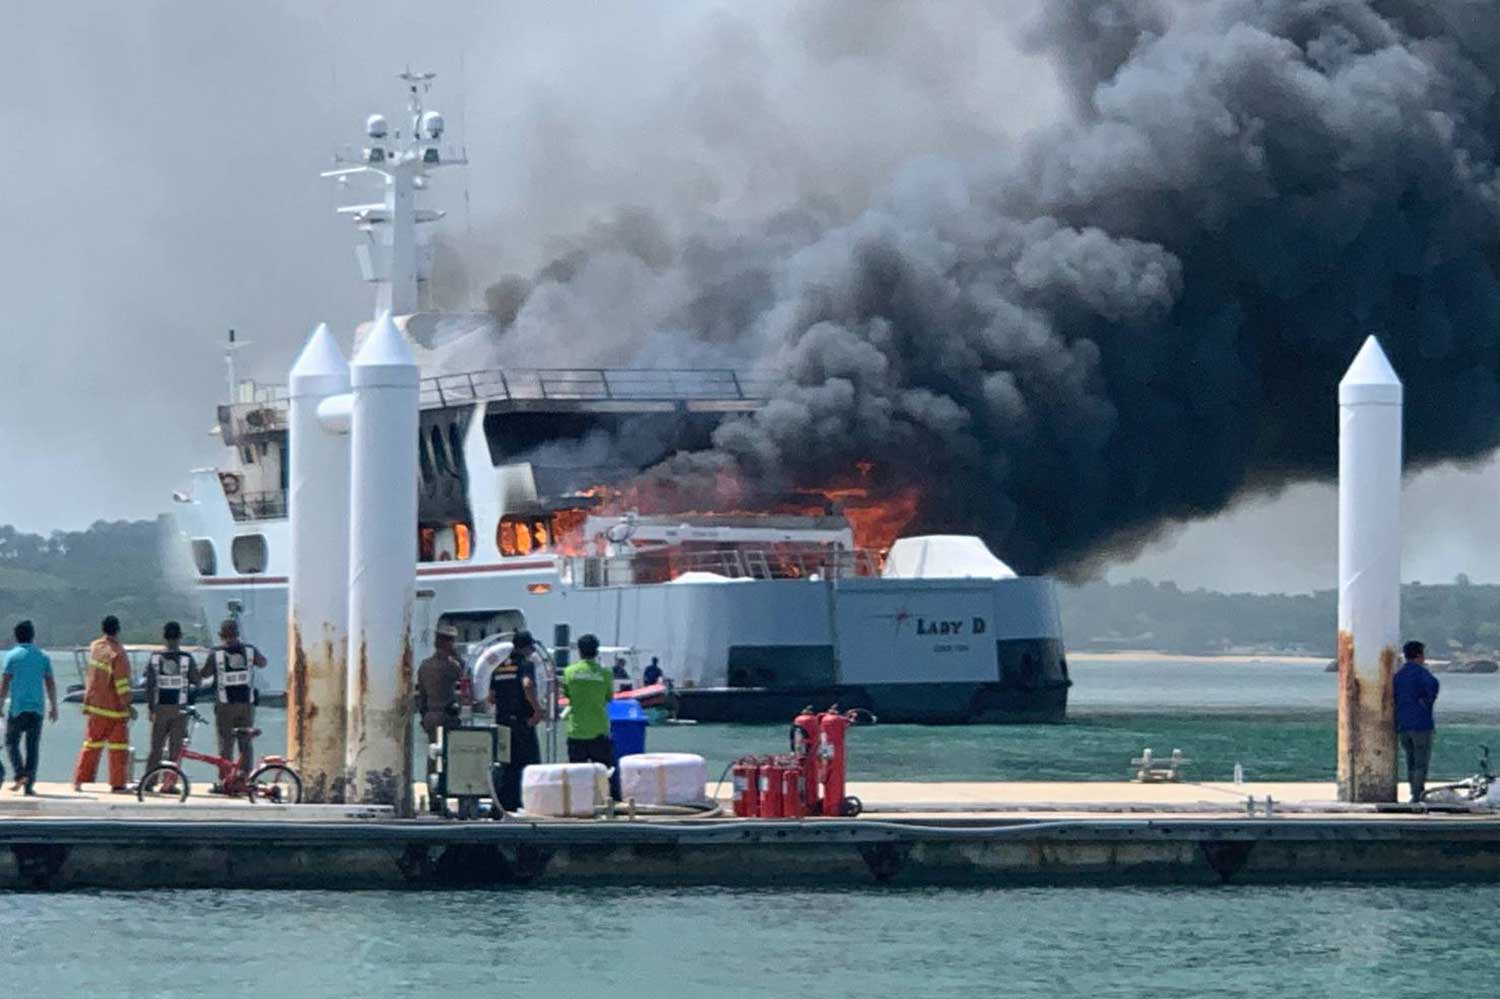 Smoke nd flames billow from the burning 240 million baht super yacht moored off a pier in Thalang district, Phuket, on Wednesday morning. No one was injured.  (Photo by Achadtaya Chuenriran)